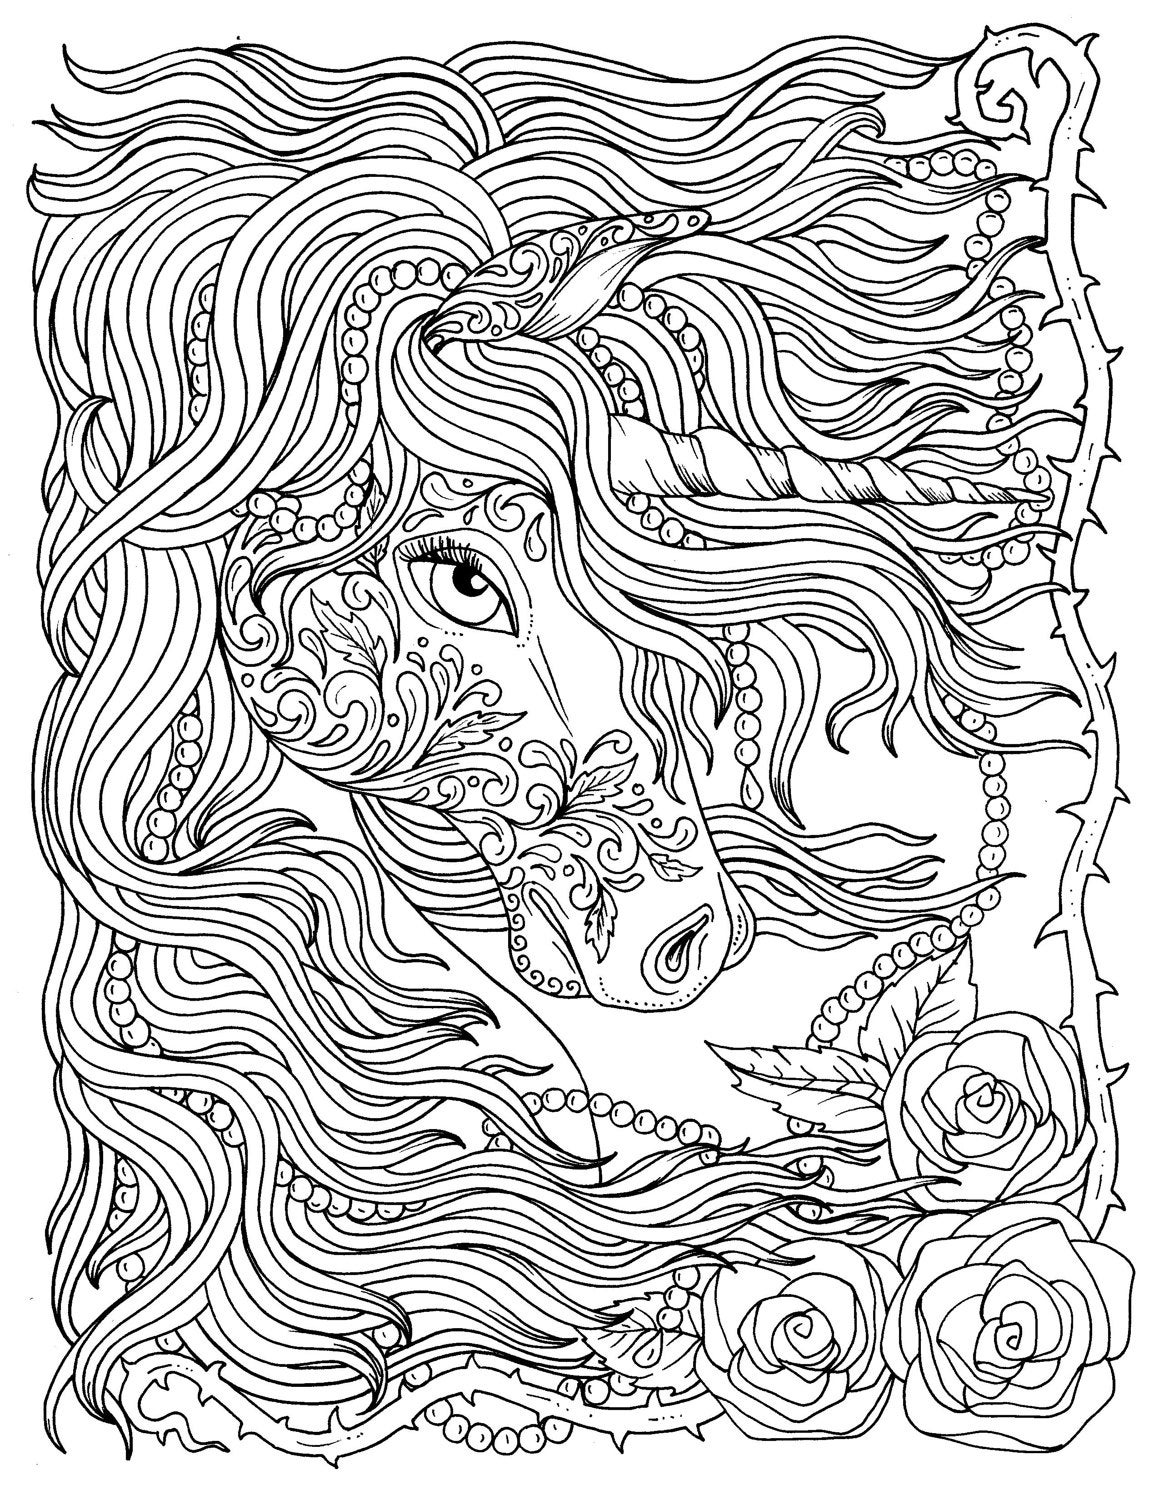 unicorn and pearls fantasy coloring page coloring